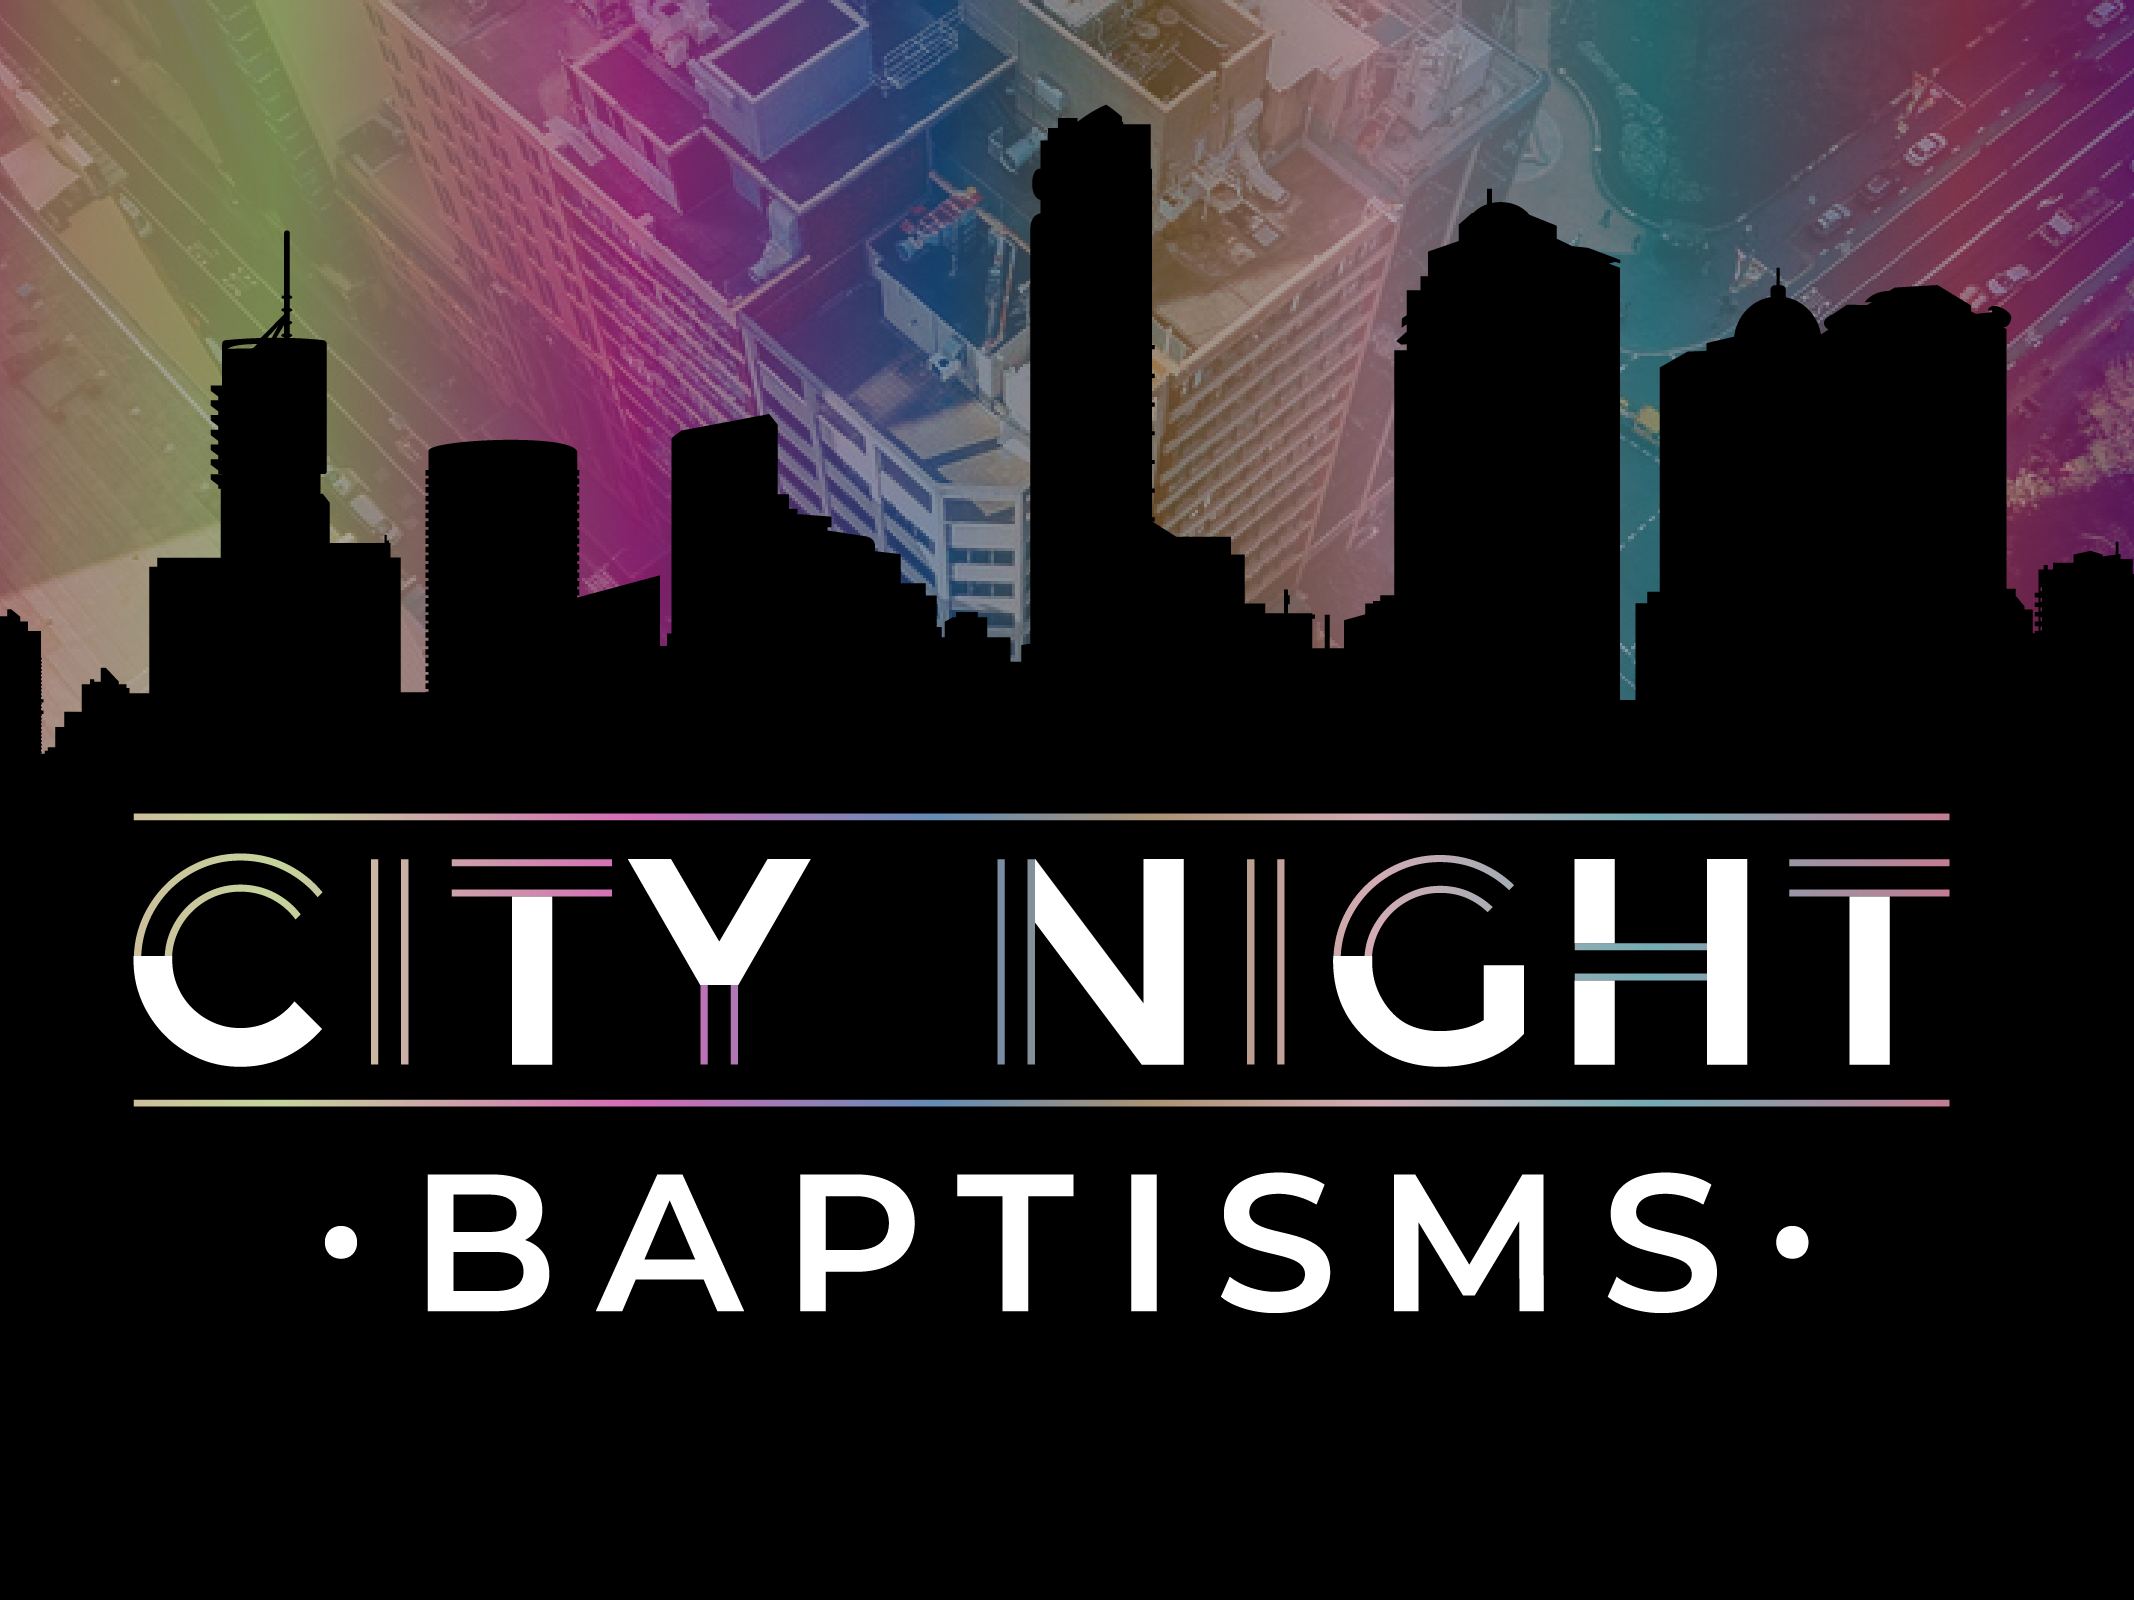 City night baptism 02